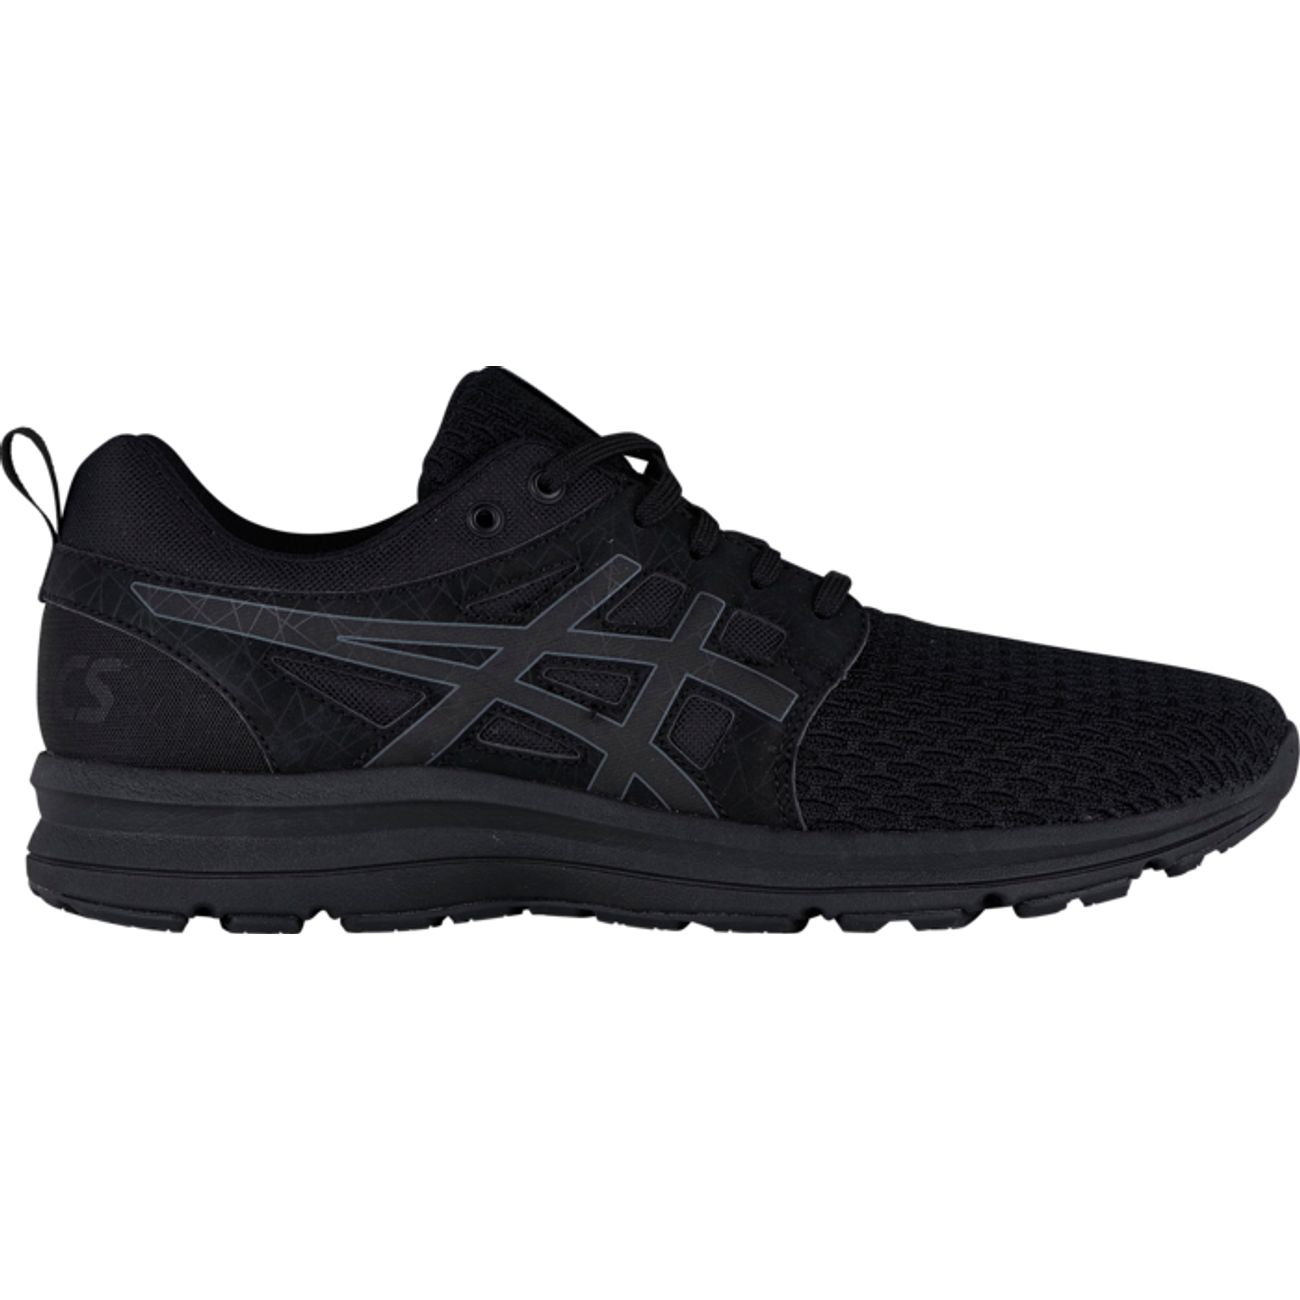 CHAUSSURES BASSES Loisirs homme ASICS GEL TORRANCE MX